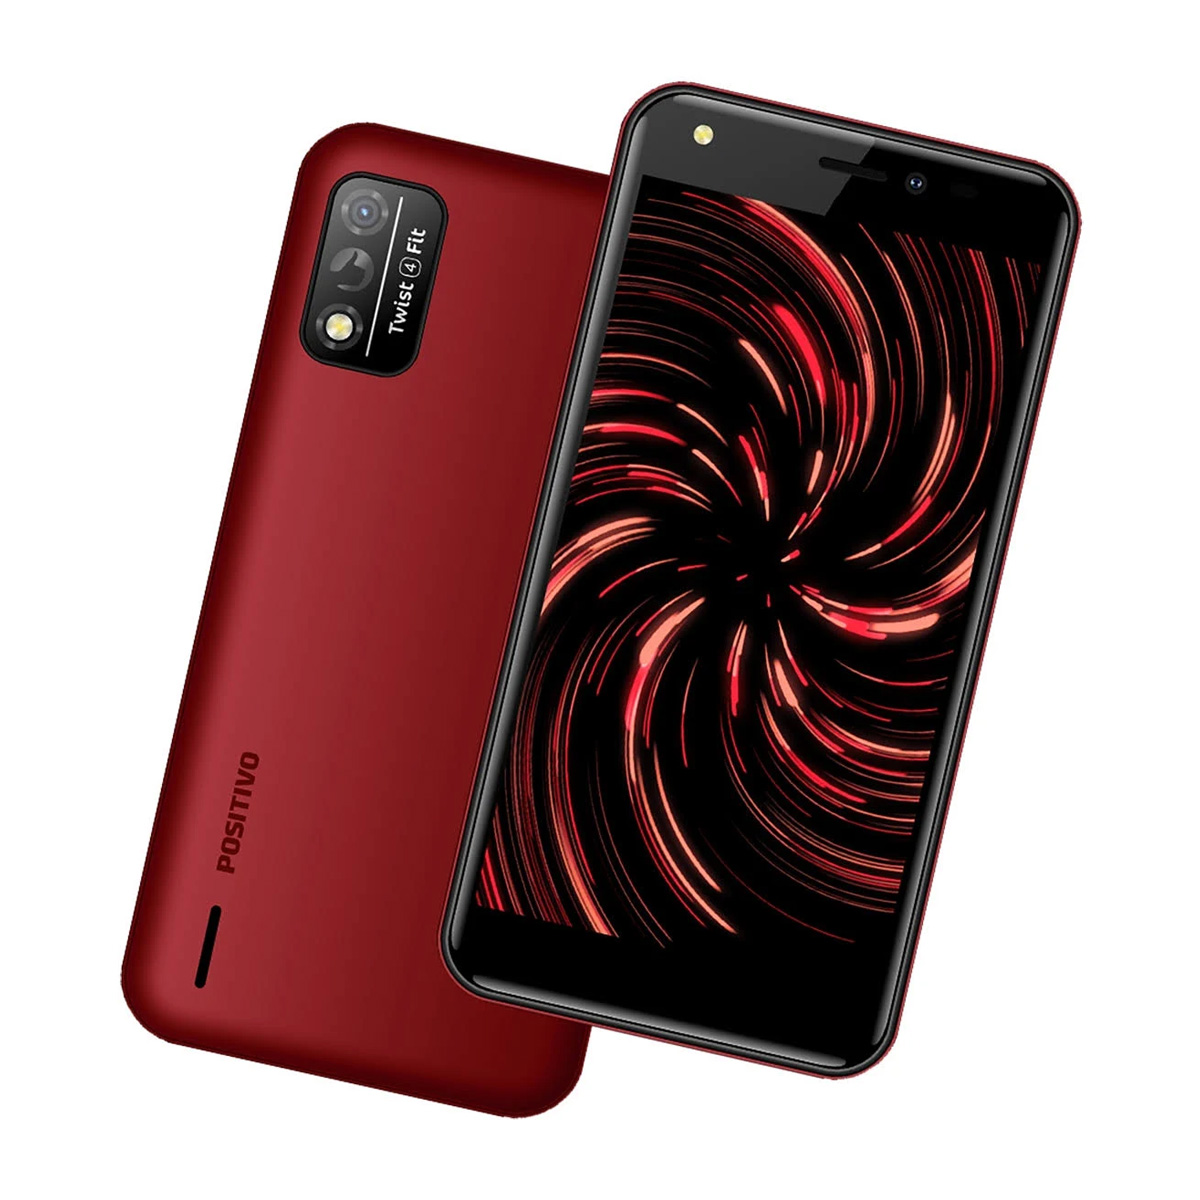 Positivo Twist 4 Fit 32gb Tela 5' Android 8mp+5mp Mostruário